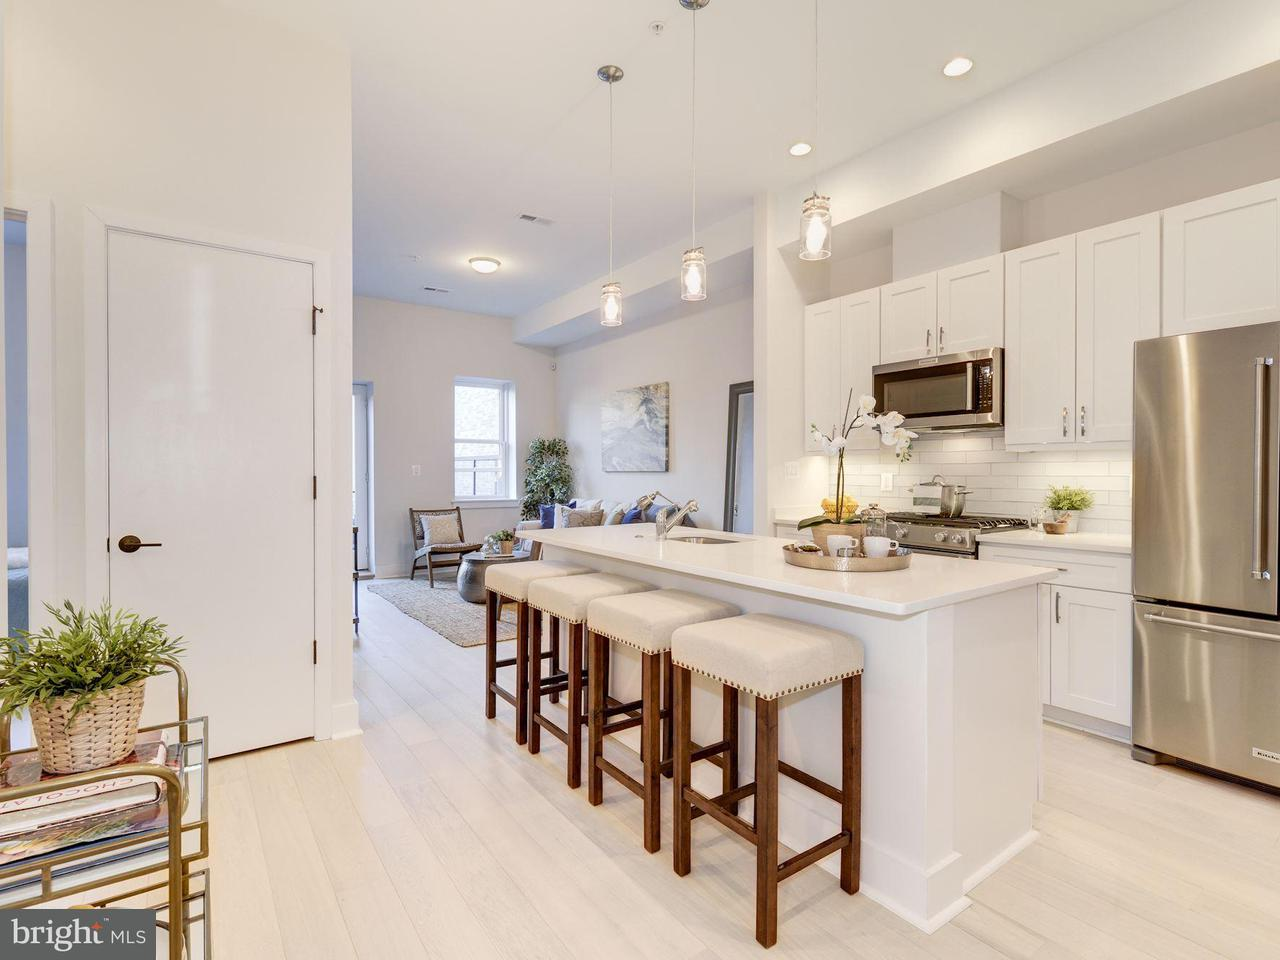 Single Family for Sale at 475 New York Ave NW #6 Washington, District Of Columbia 20001 United States